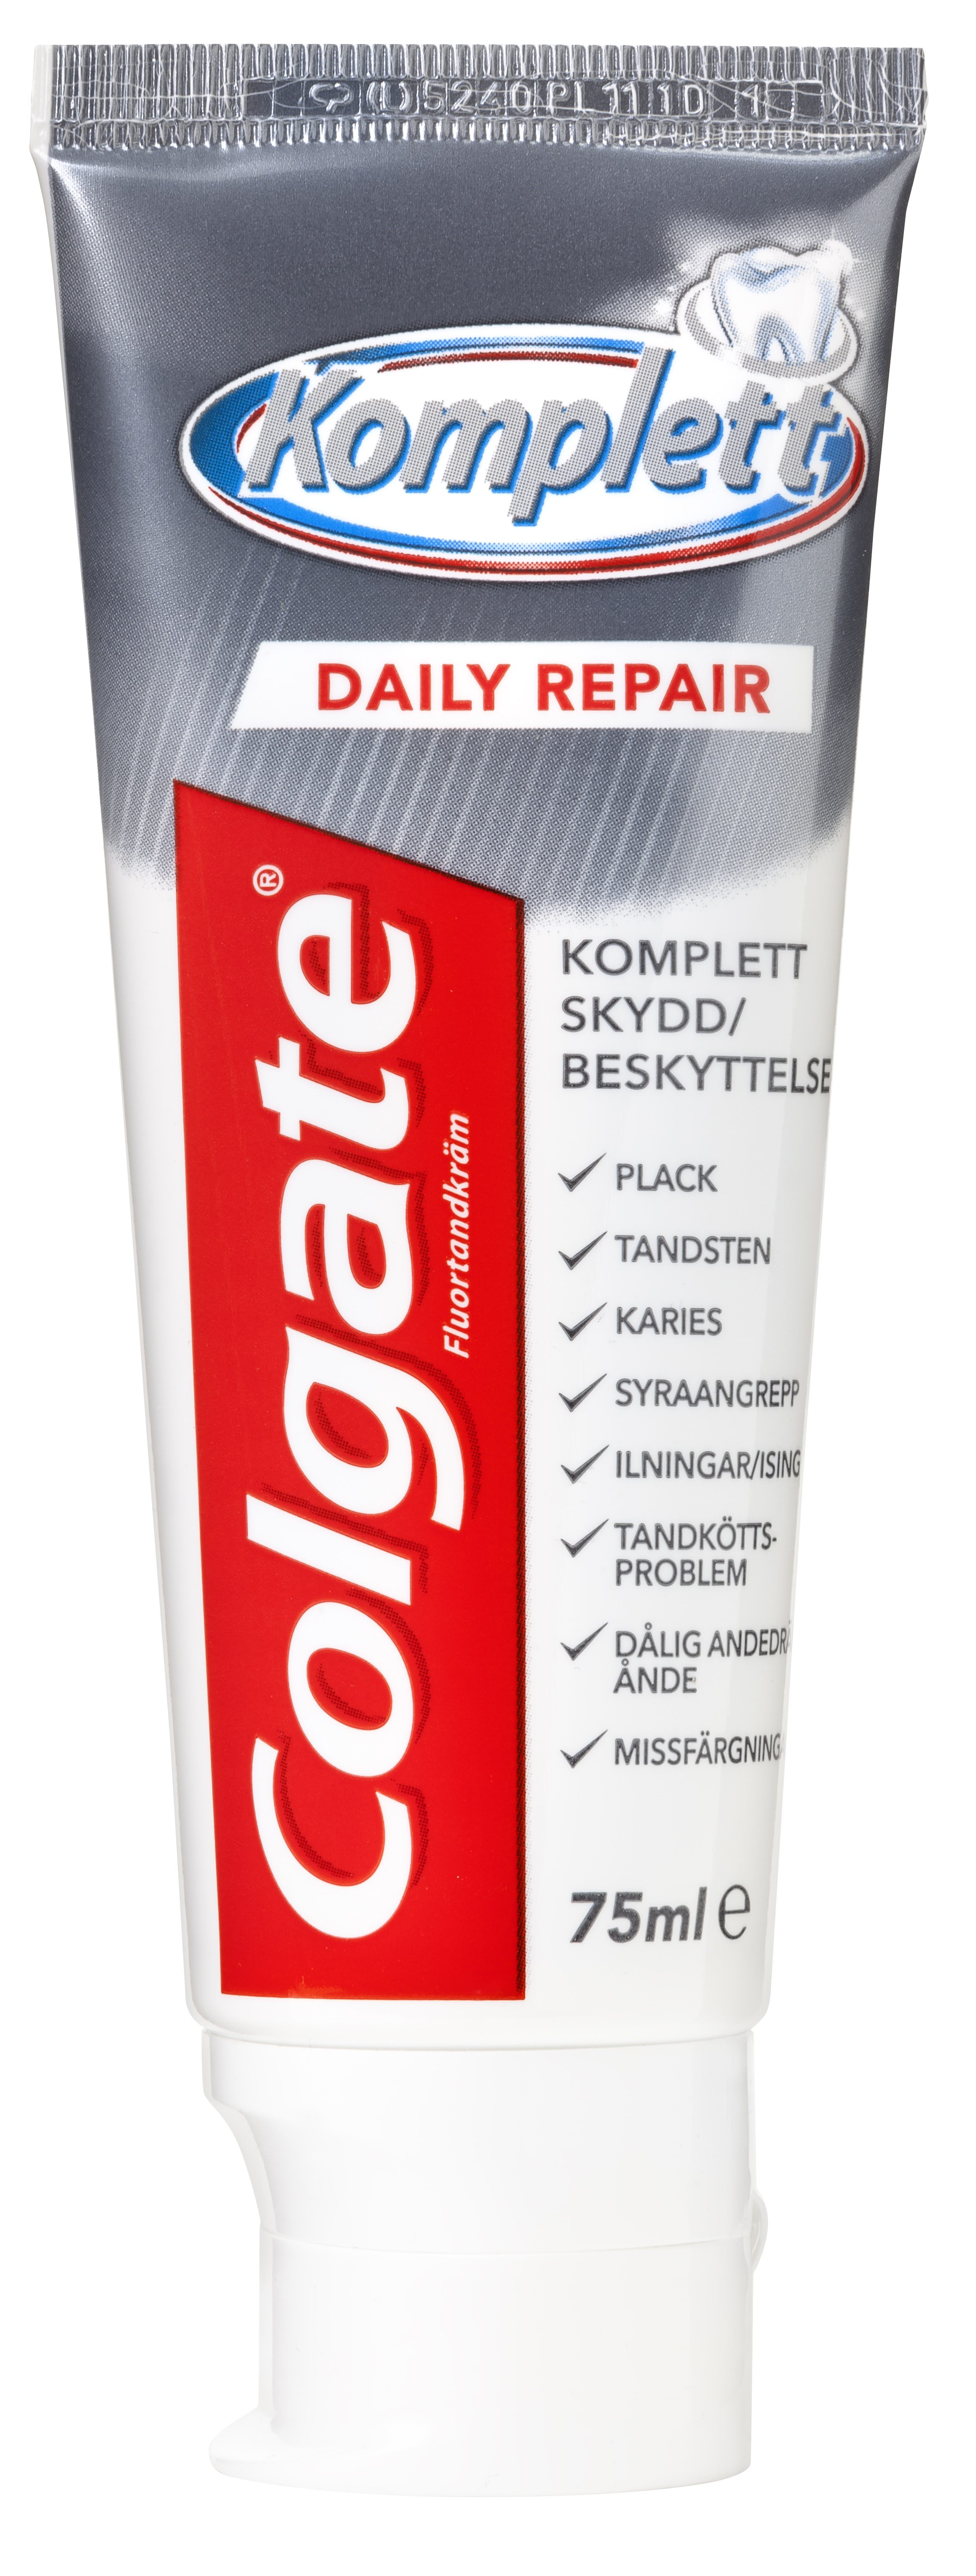 Colgate, Komplet Daily Repair, stå tube, 75 ml